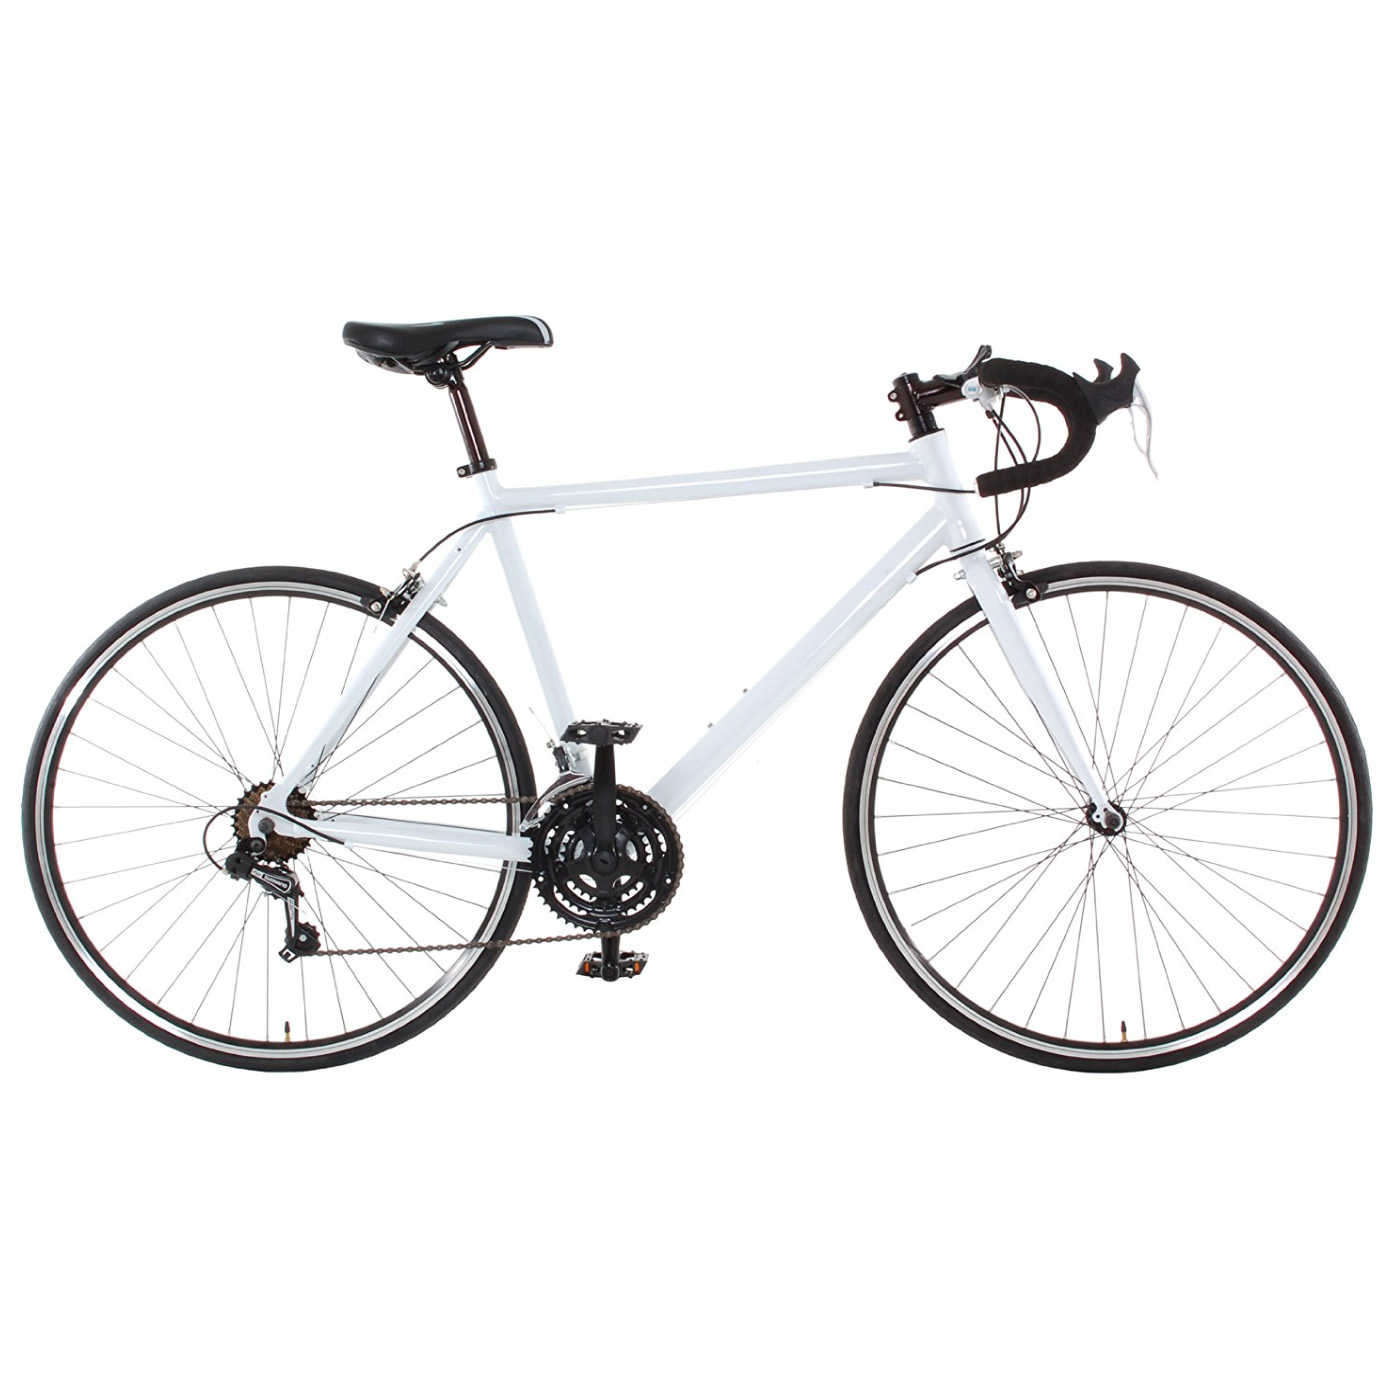 Vilano - Aluminum Road Bicycle Shimano 21-Speed 700C, White, Small, 50cm